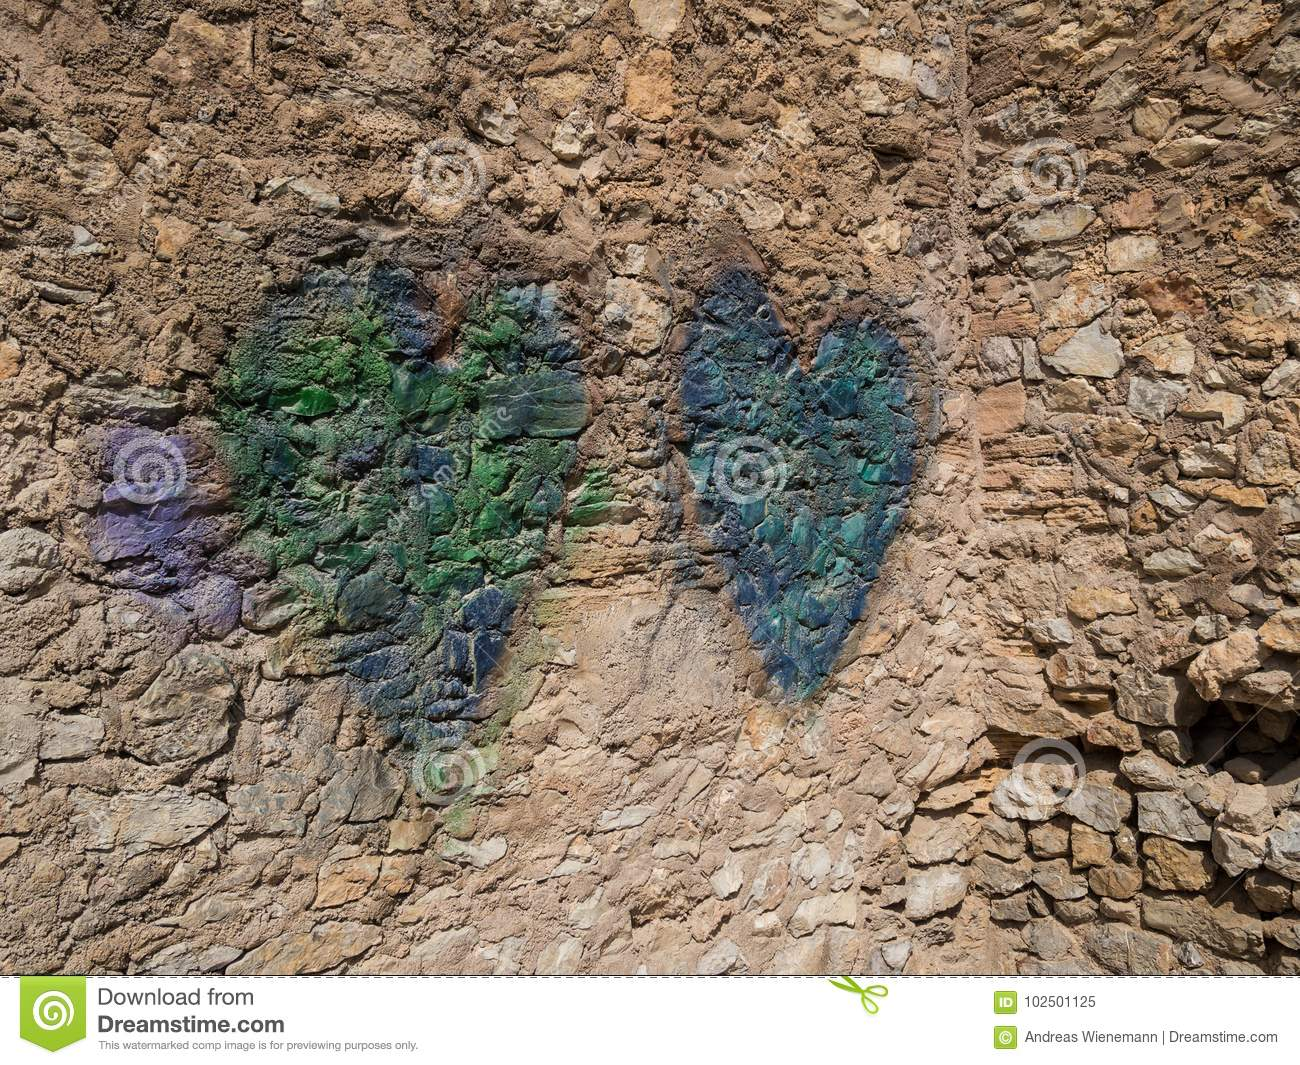 Two hearts on a natural stone wall, arta, mallorca